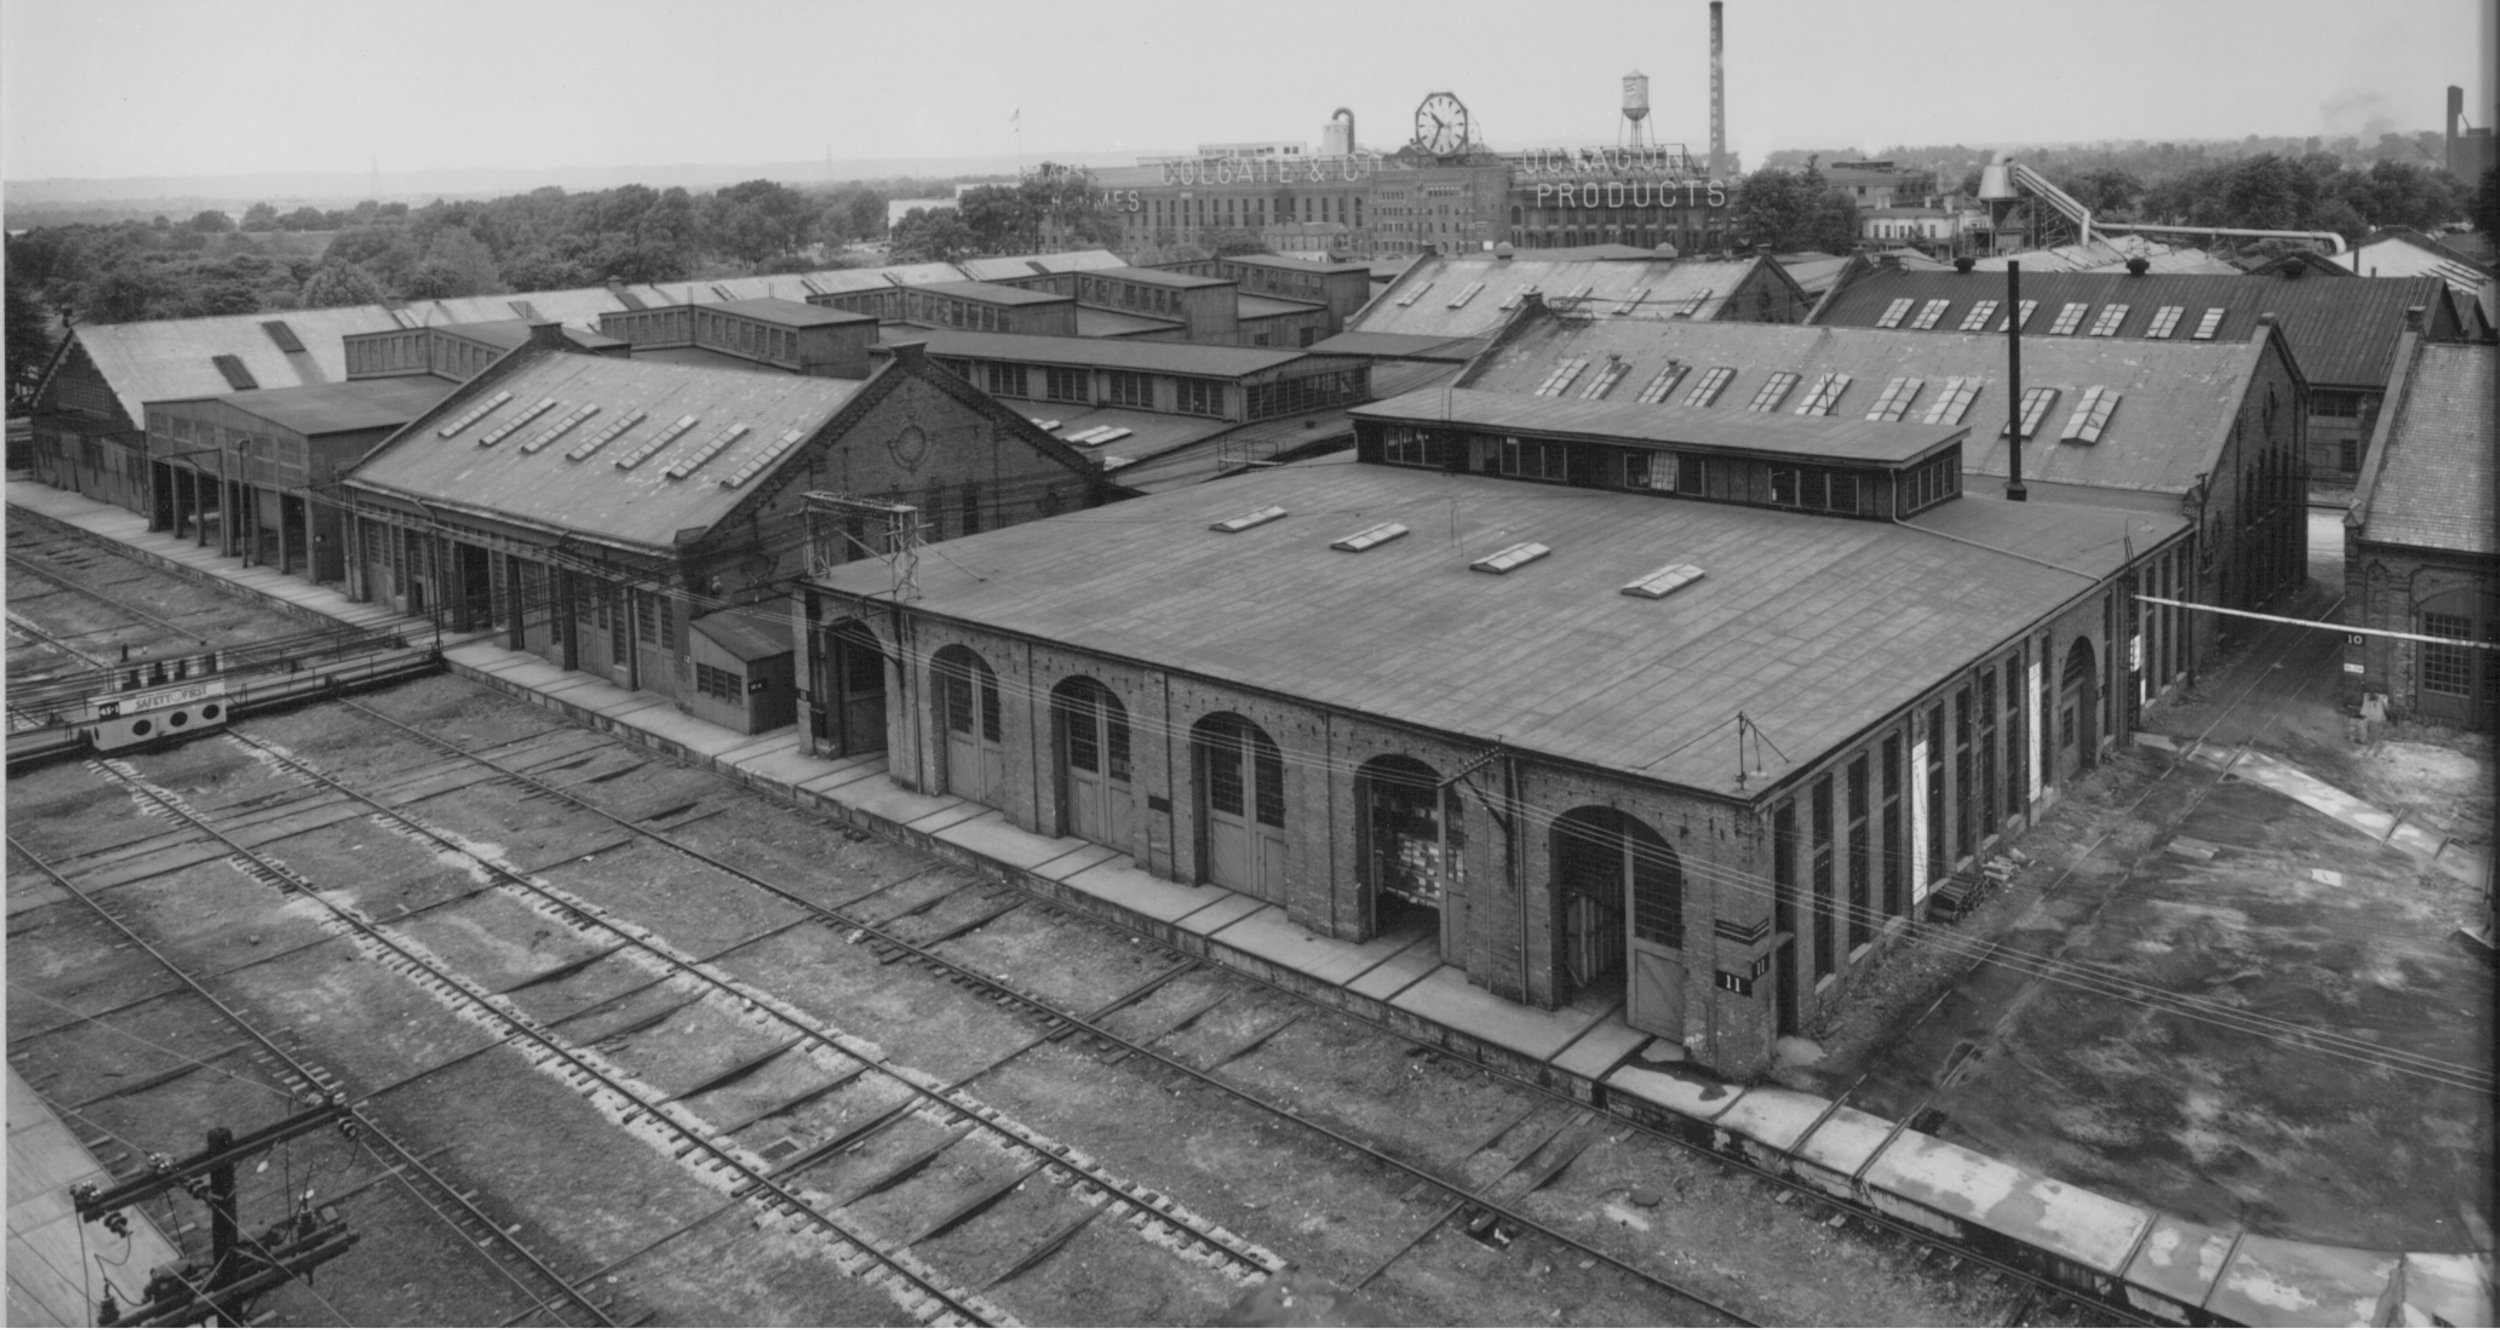 This photo was taken circa 1941 and shows the 400 building being used for storage during World War II. The tracks in front of the building, which is now the Court Avenue extension,were one of the transfer pits where cars would be shuttled horizontally among the buildings.